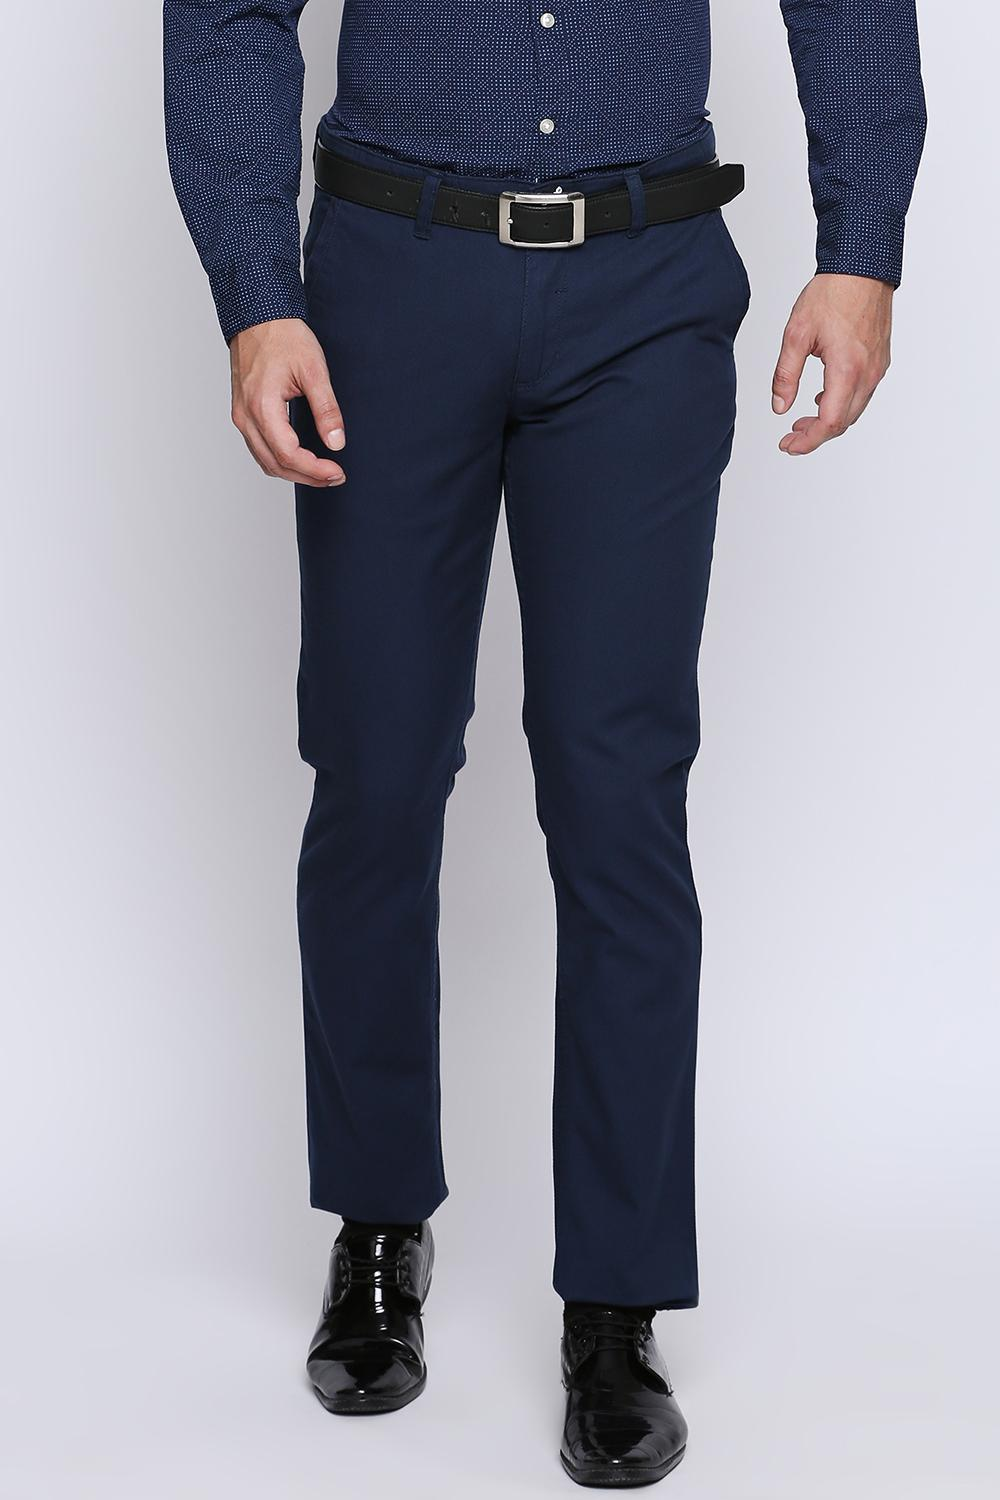 ace9bf72a81 Buy Mens Trousers and Chinos Online in India